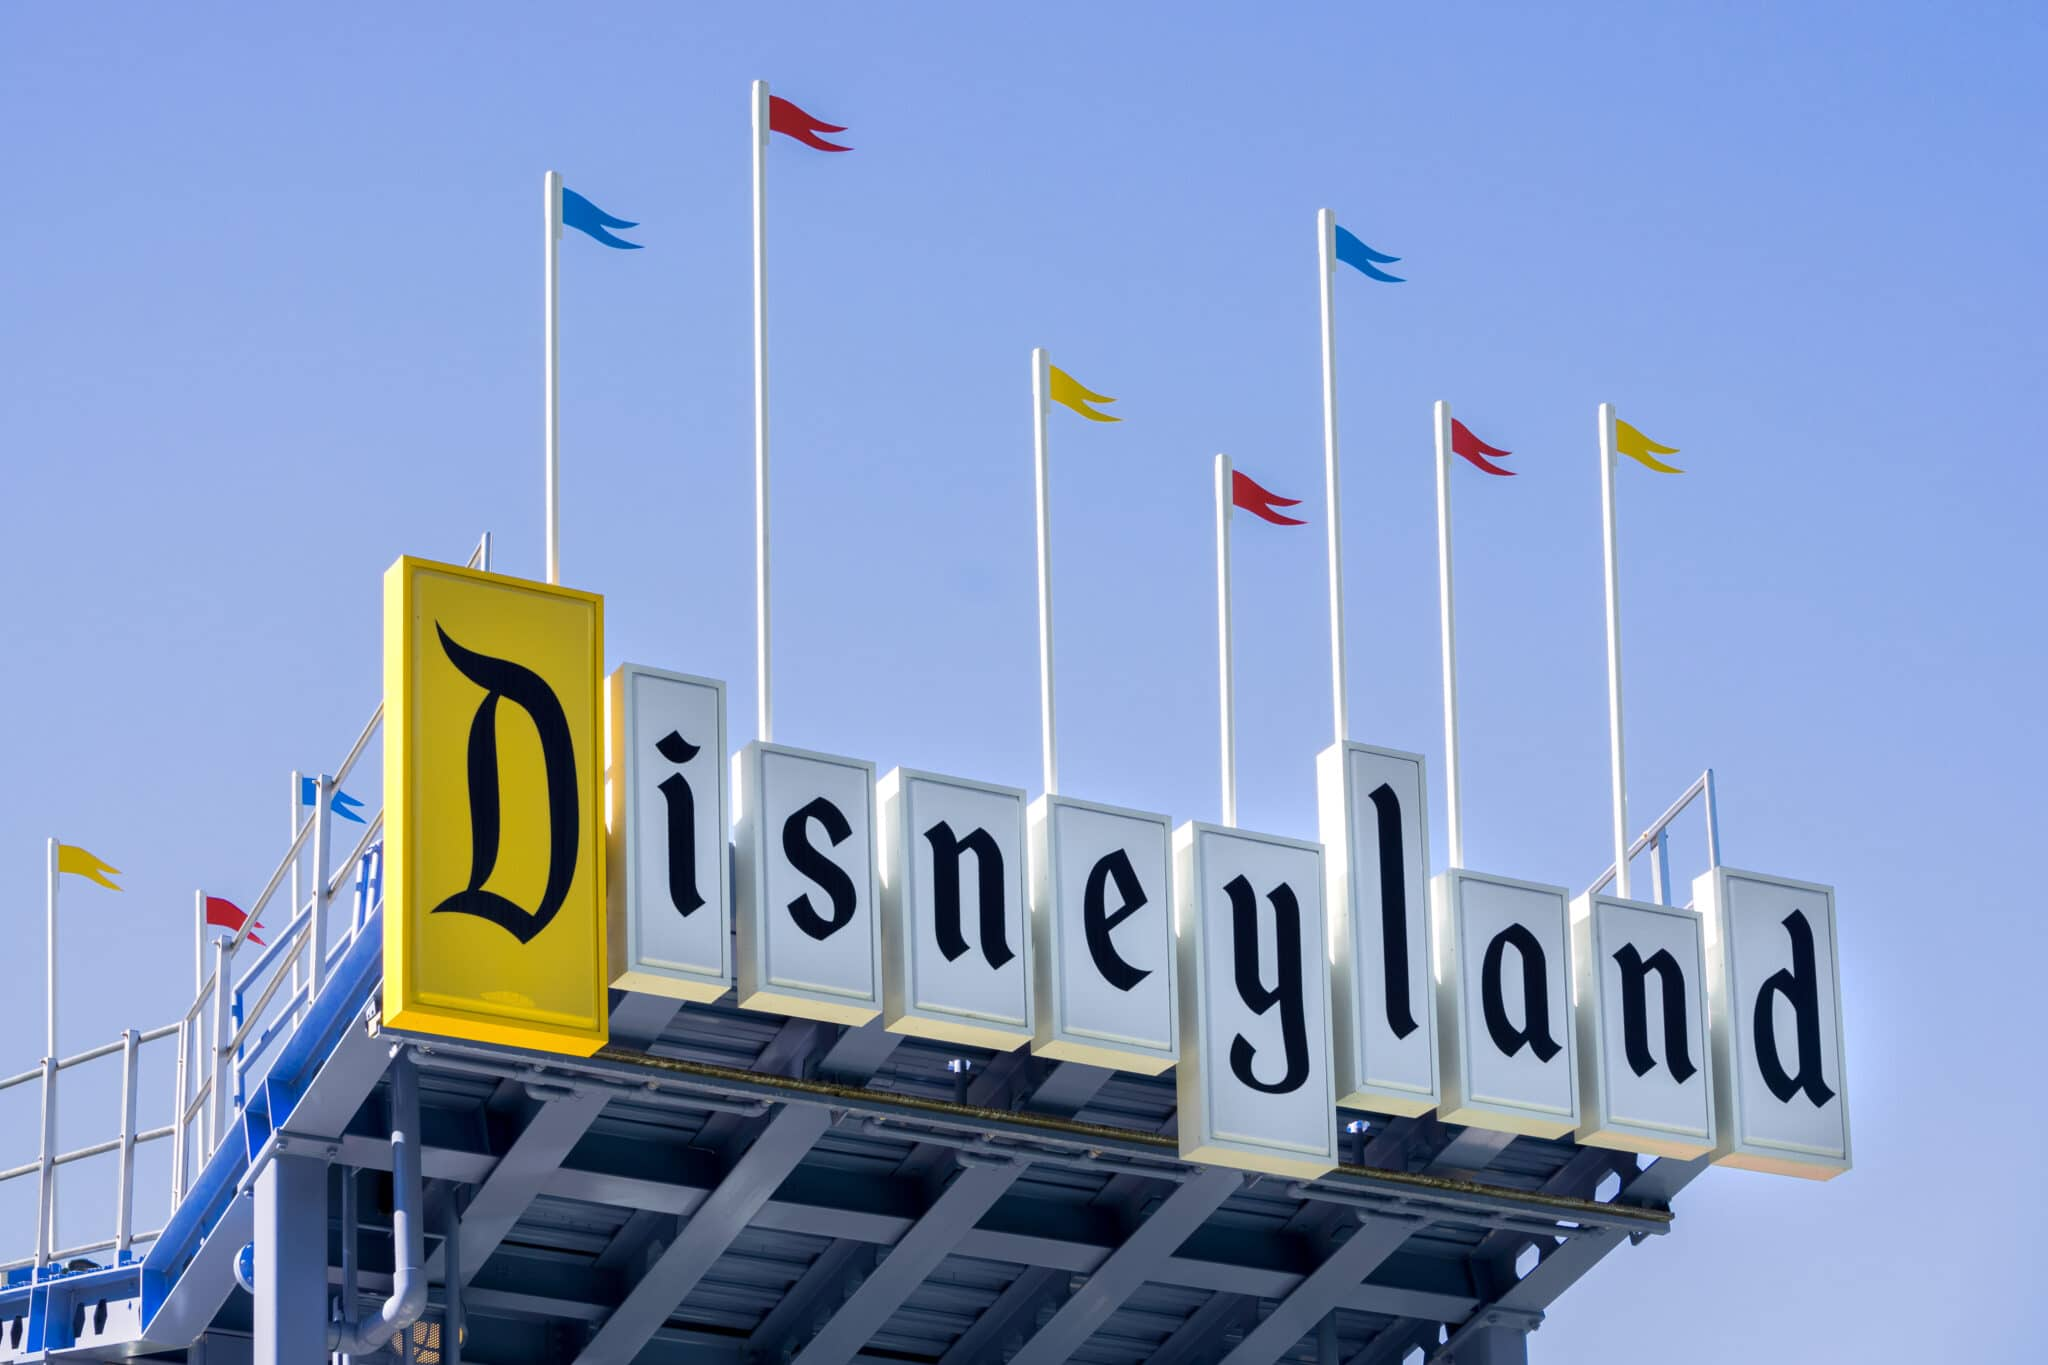 Will Residents Have First Access To Disney?